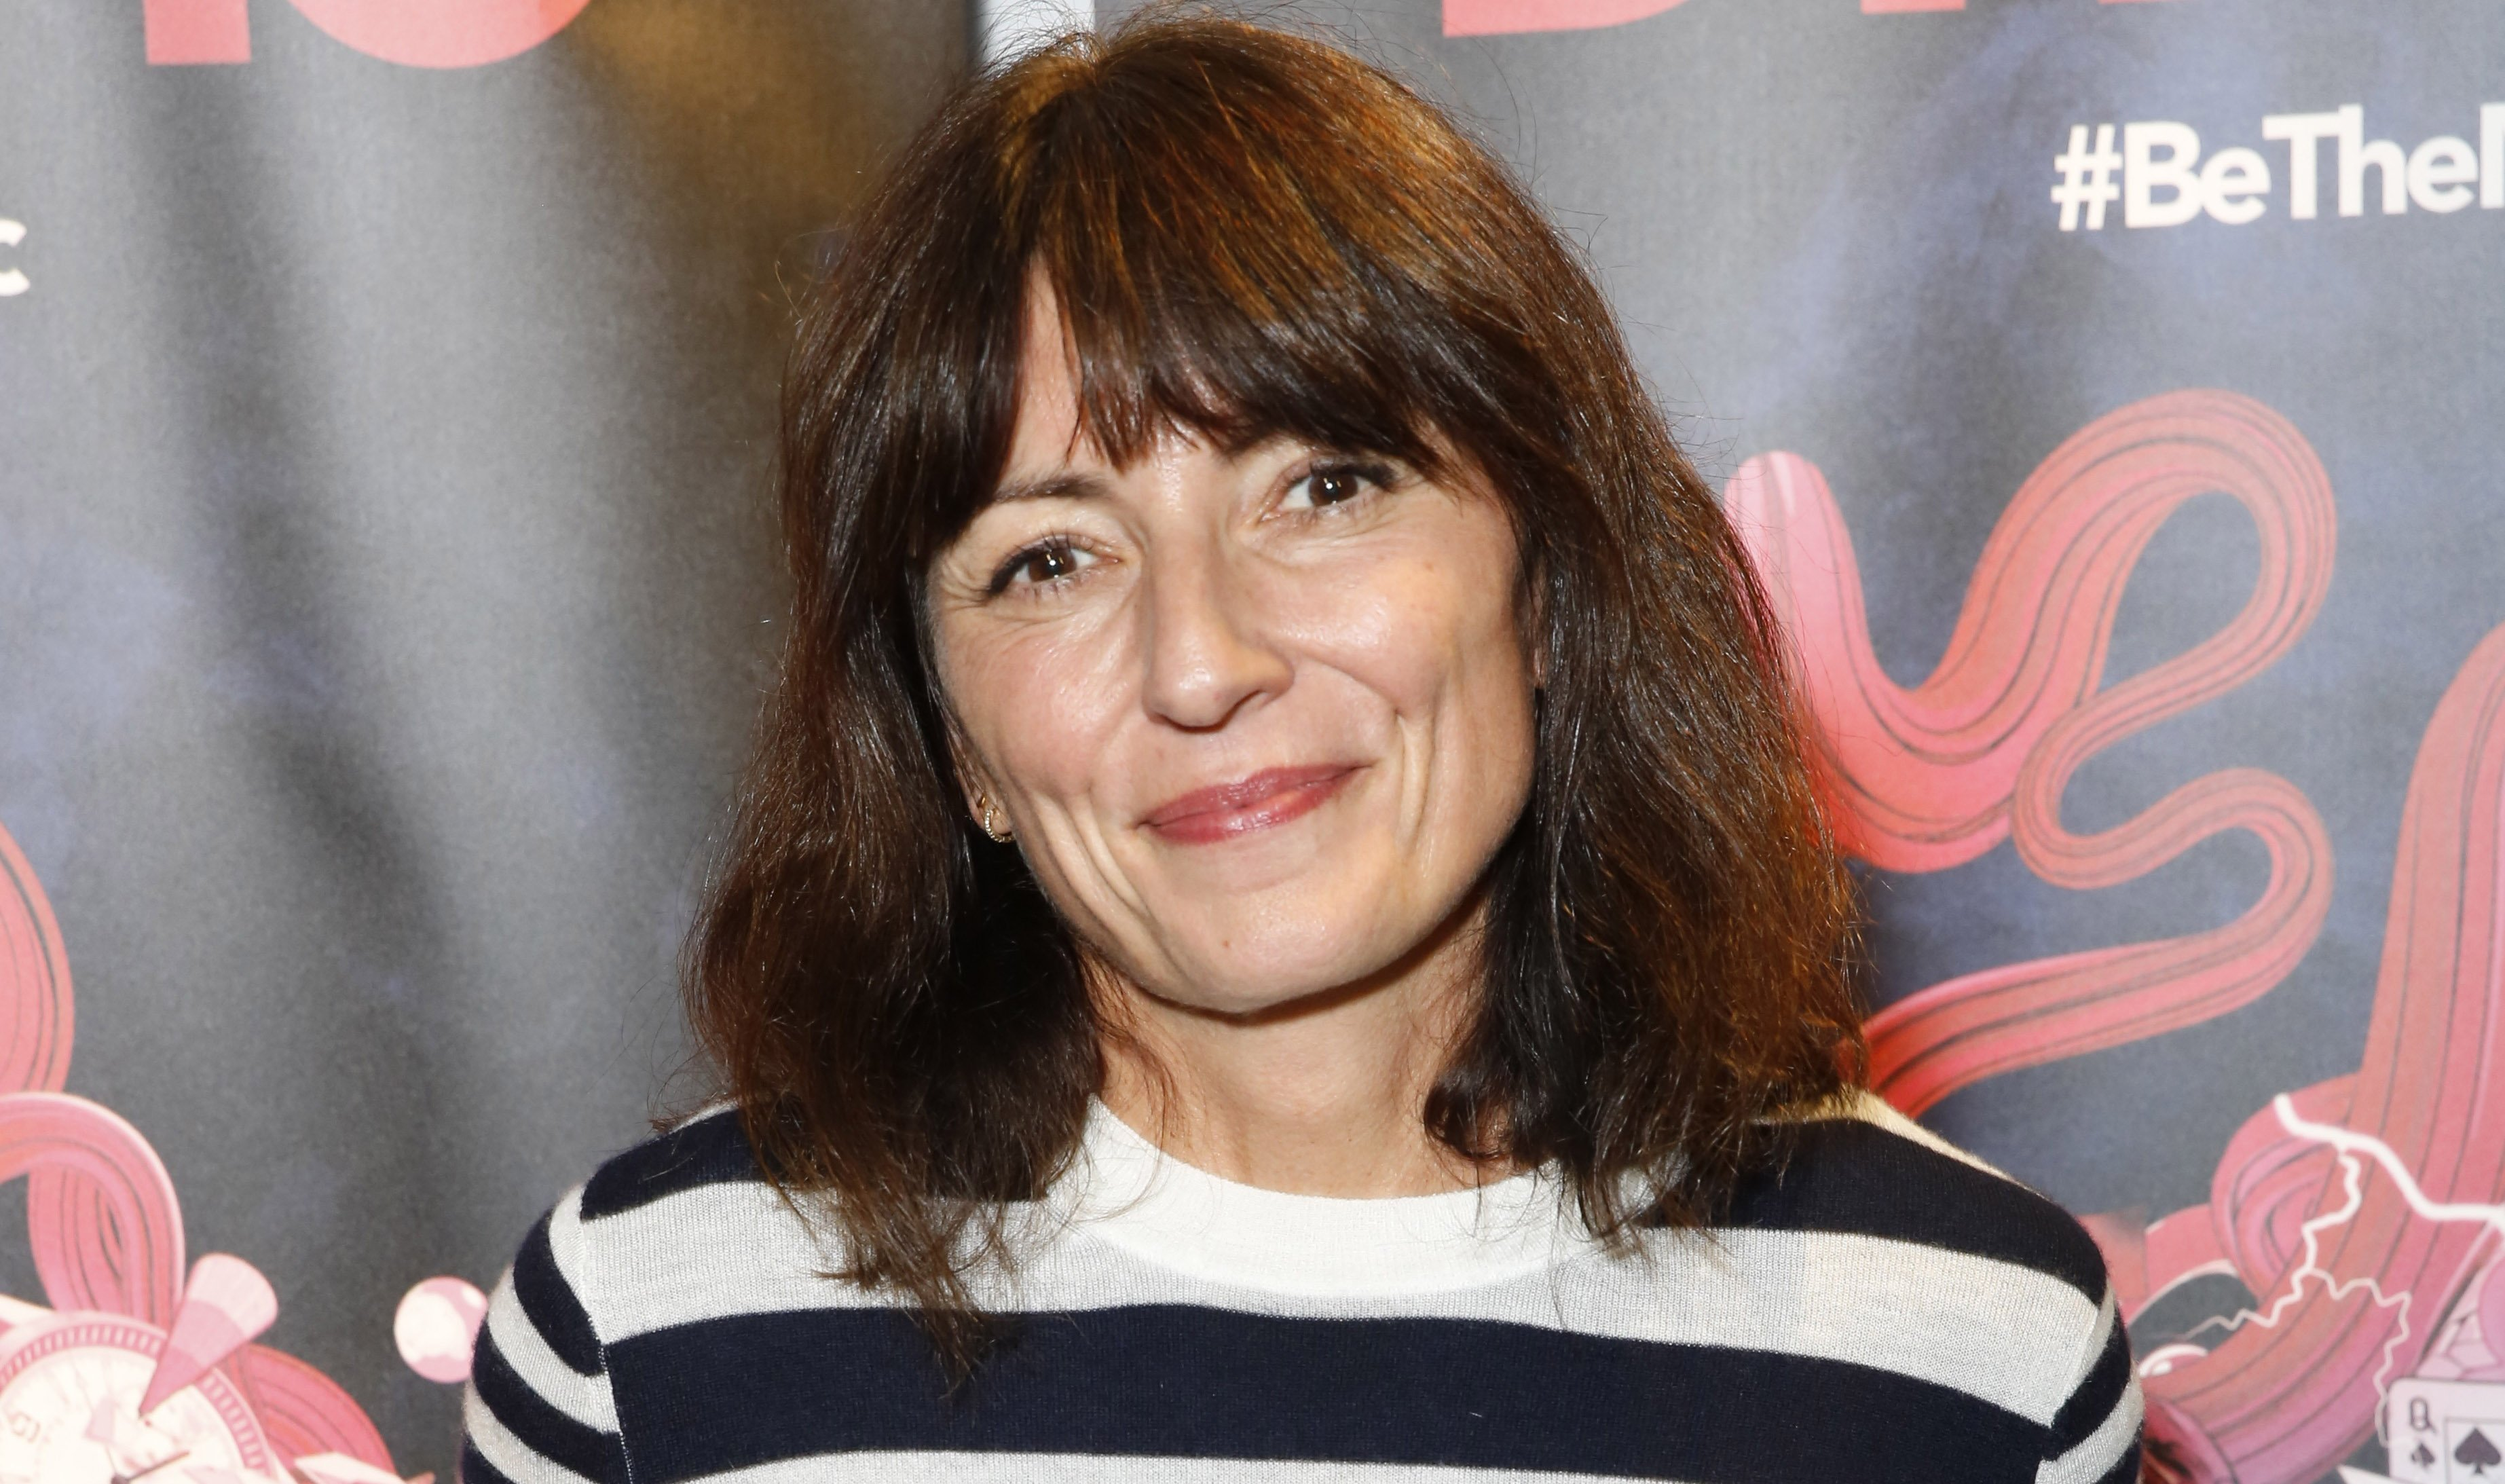 Davina McCall hits back at body shaming trolls